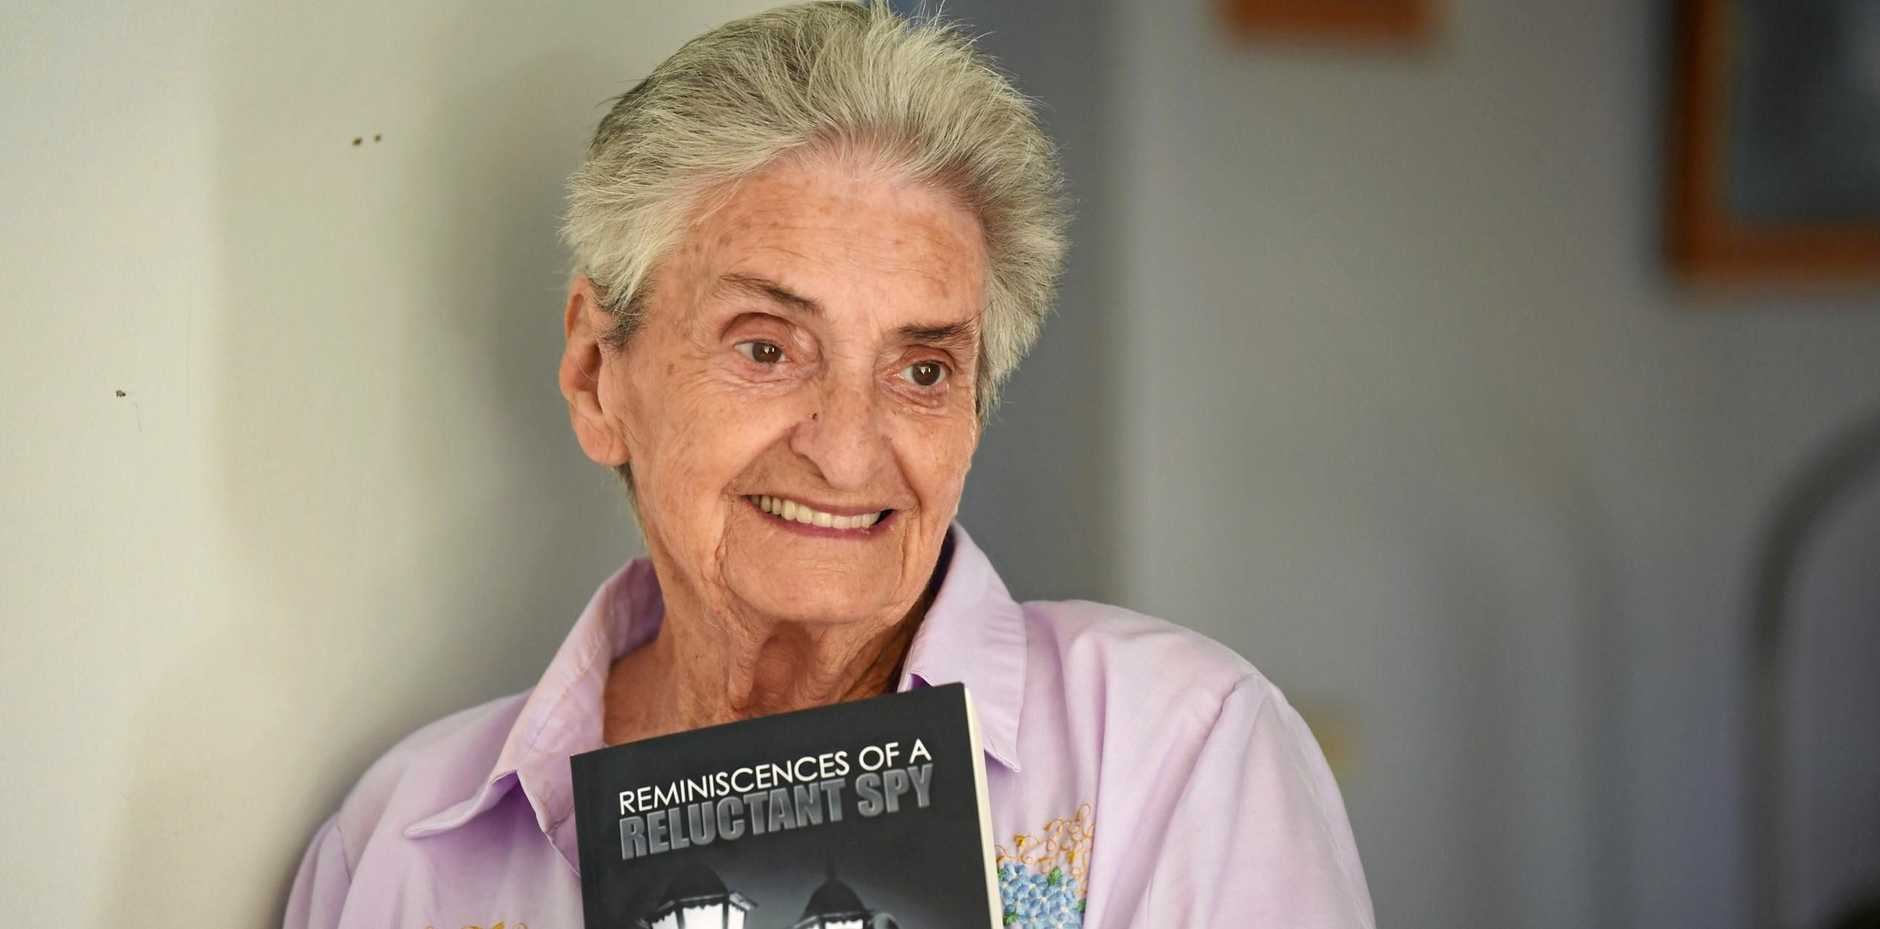 AUTHOR: Roma Ravn, 84, has written a book called  Reminiscences of a Reluctant Spy  about a former Hungarian spy who lived at Cedar Pocket.